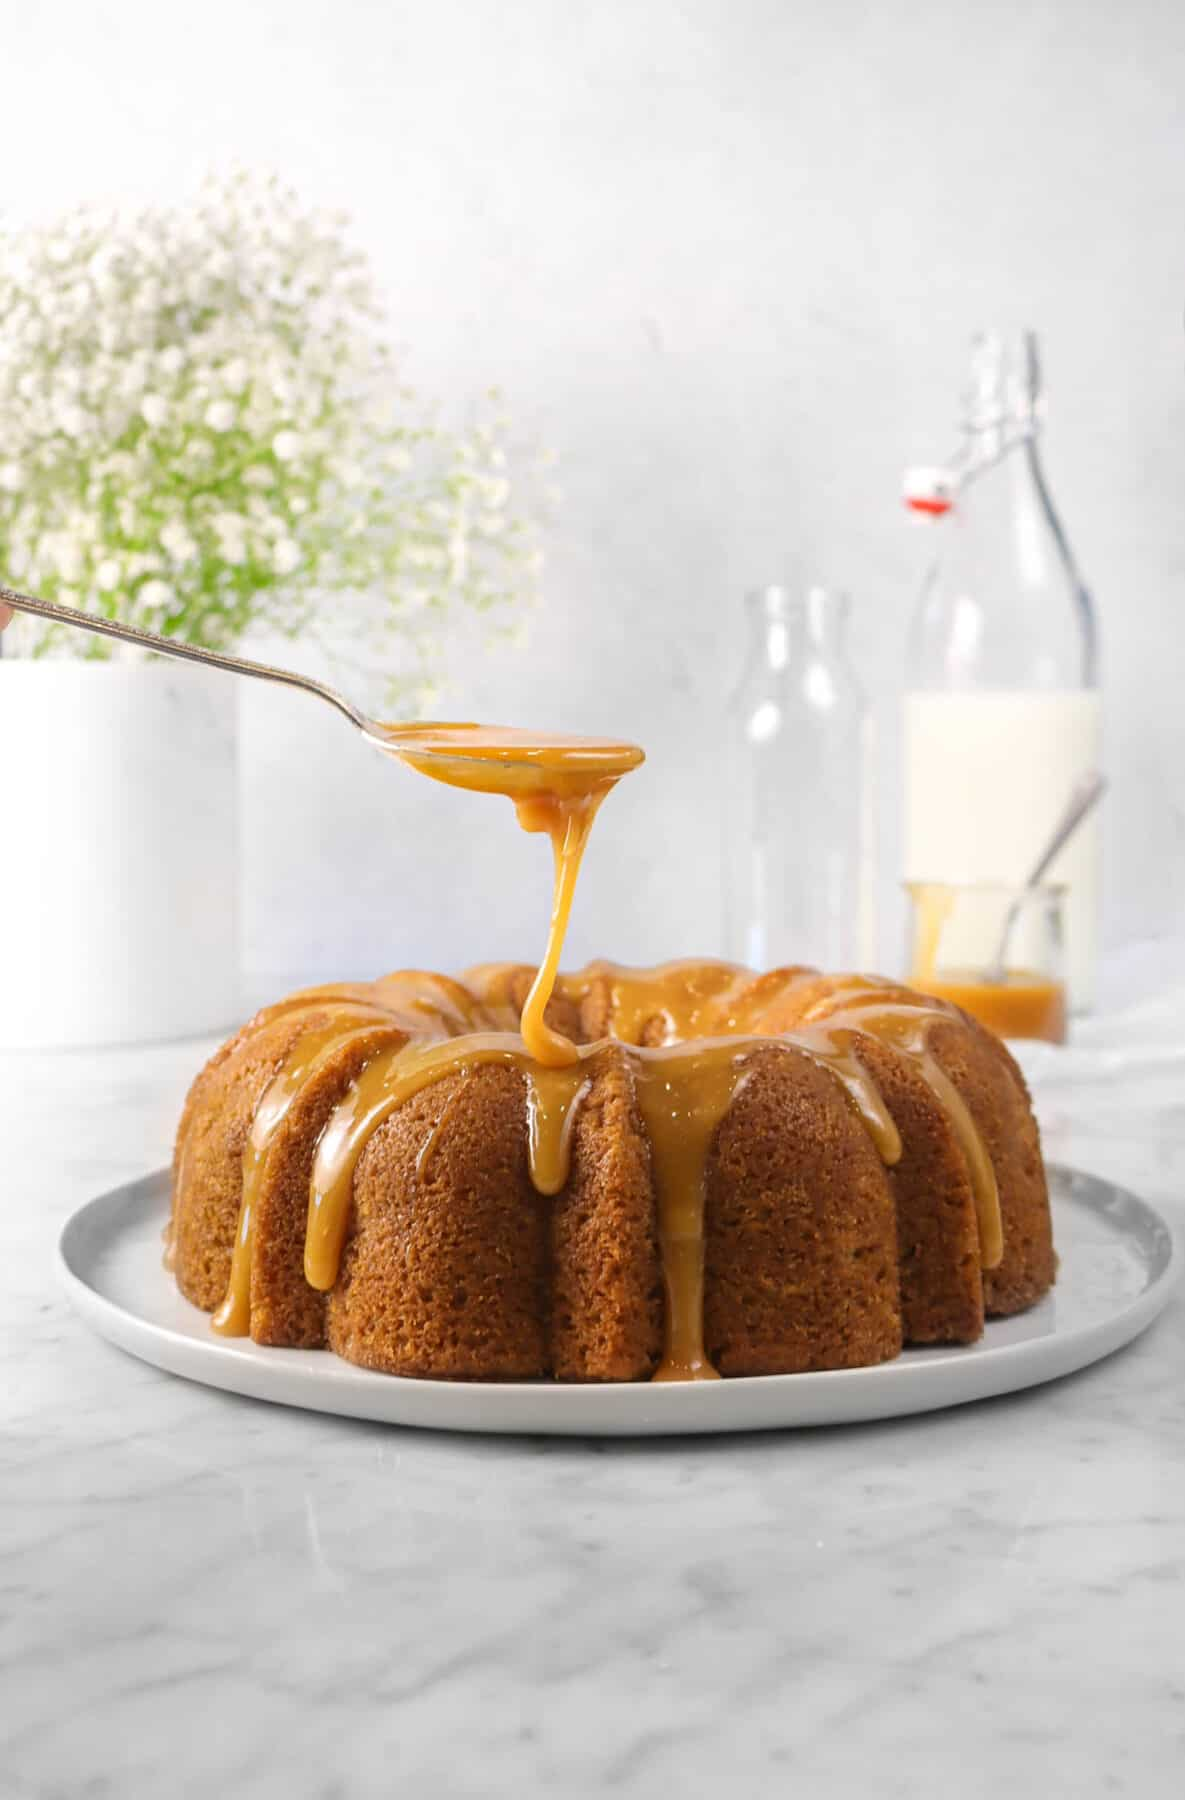 apple cinnamon cake on a white plate with caramel being drizzled onto it